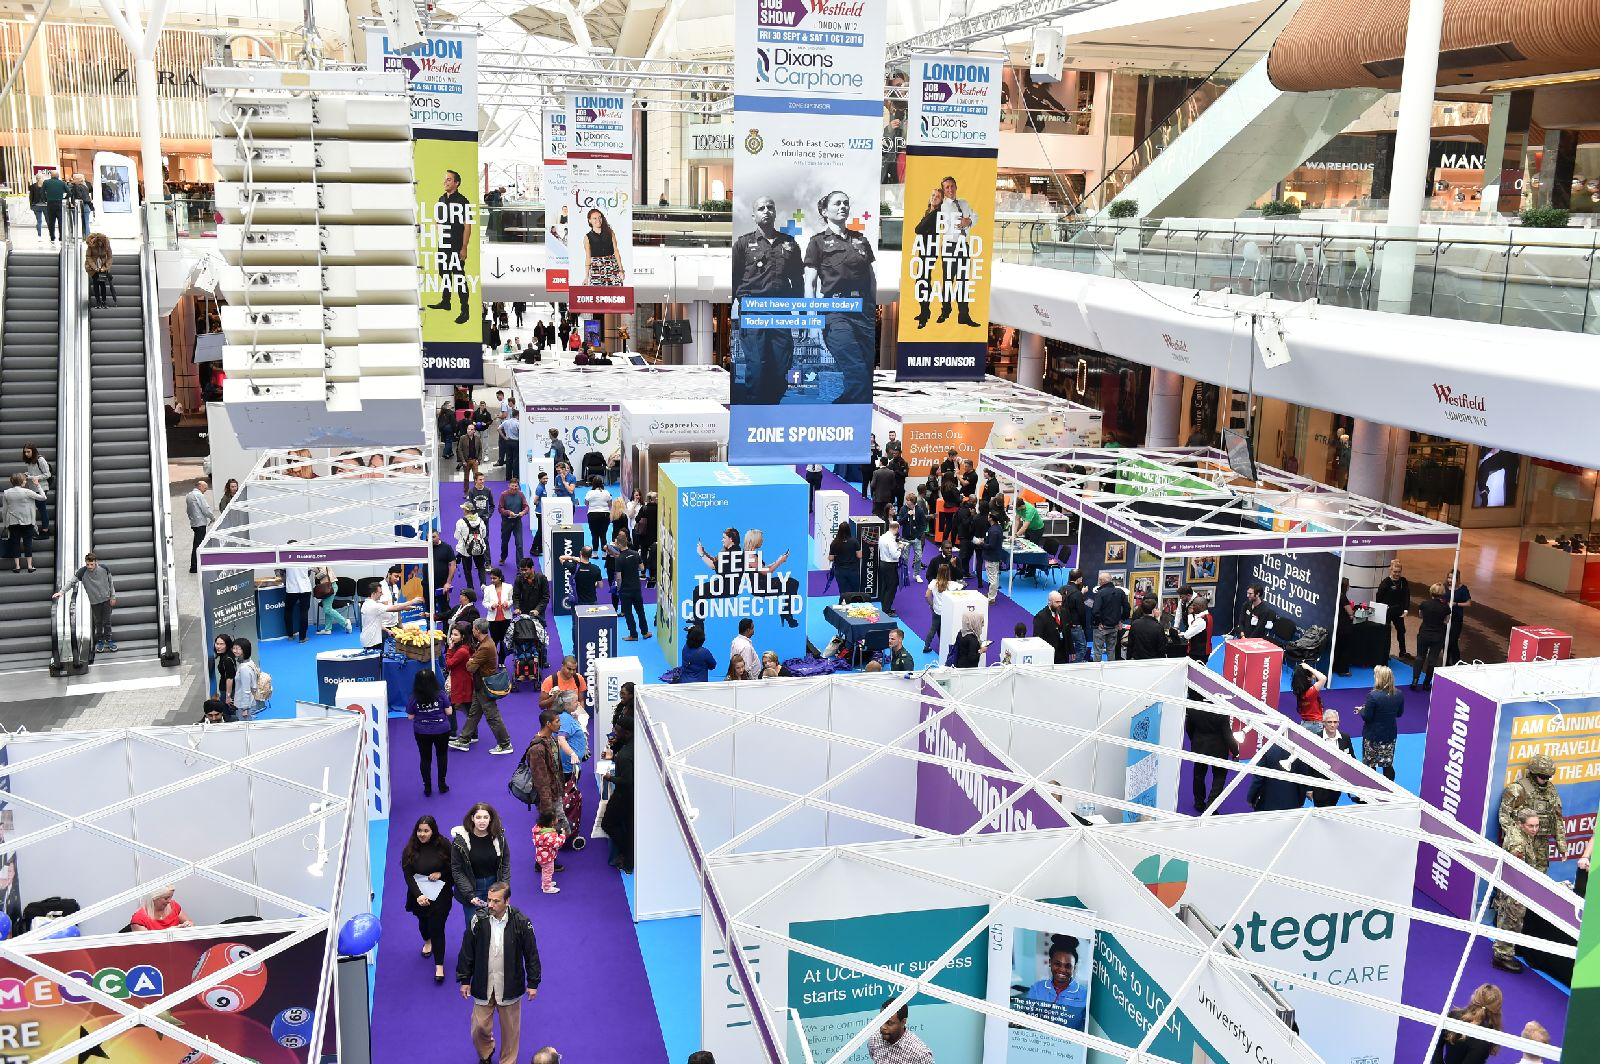 jobs lbhf thousands of jobs on offer at westfield job show